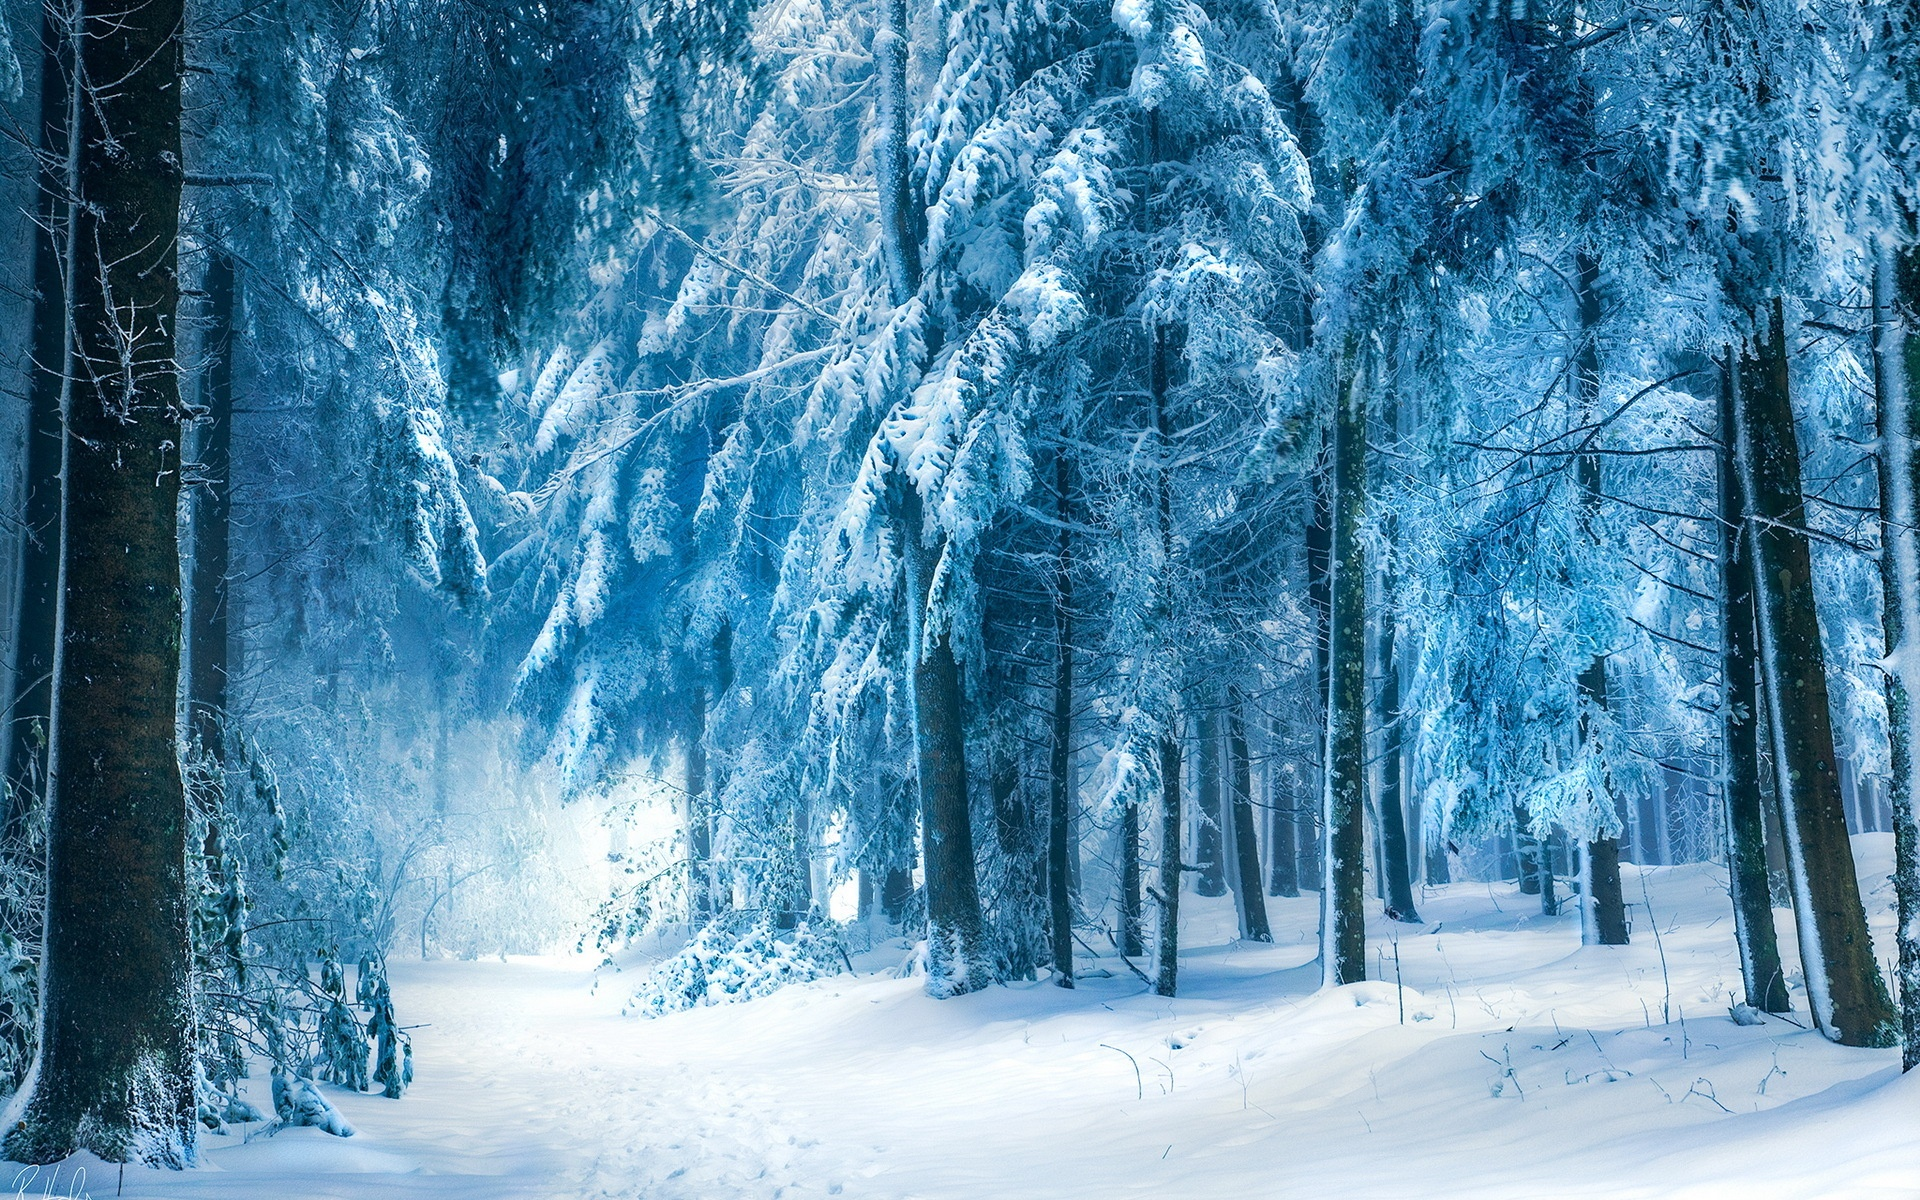 Wallpaper-Winter-landscape-snow-forest.jpg